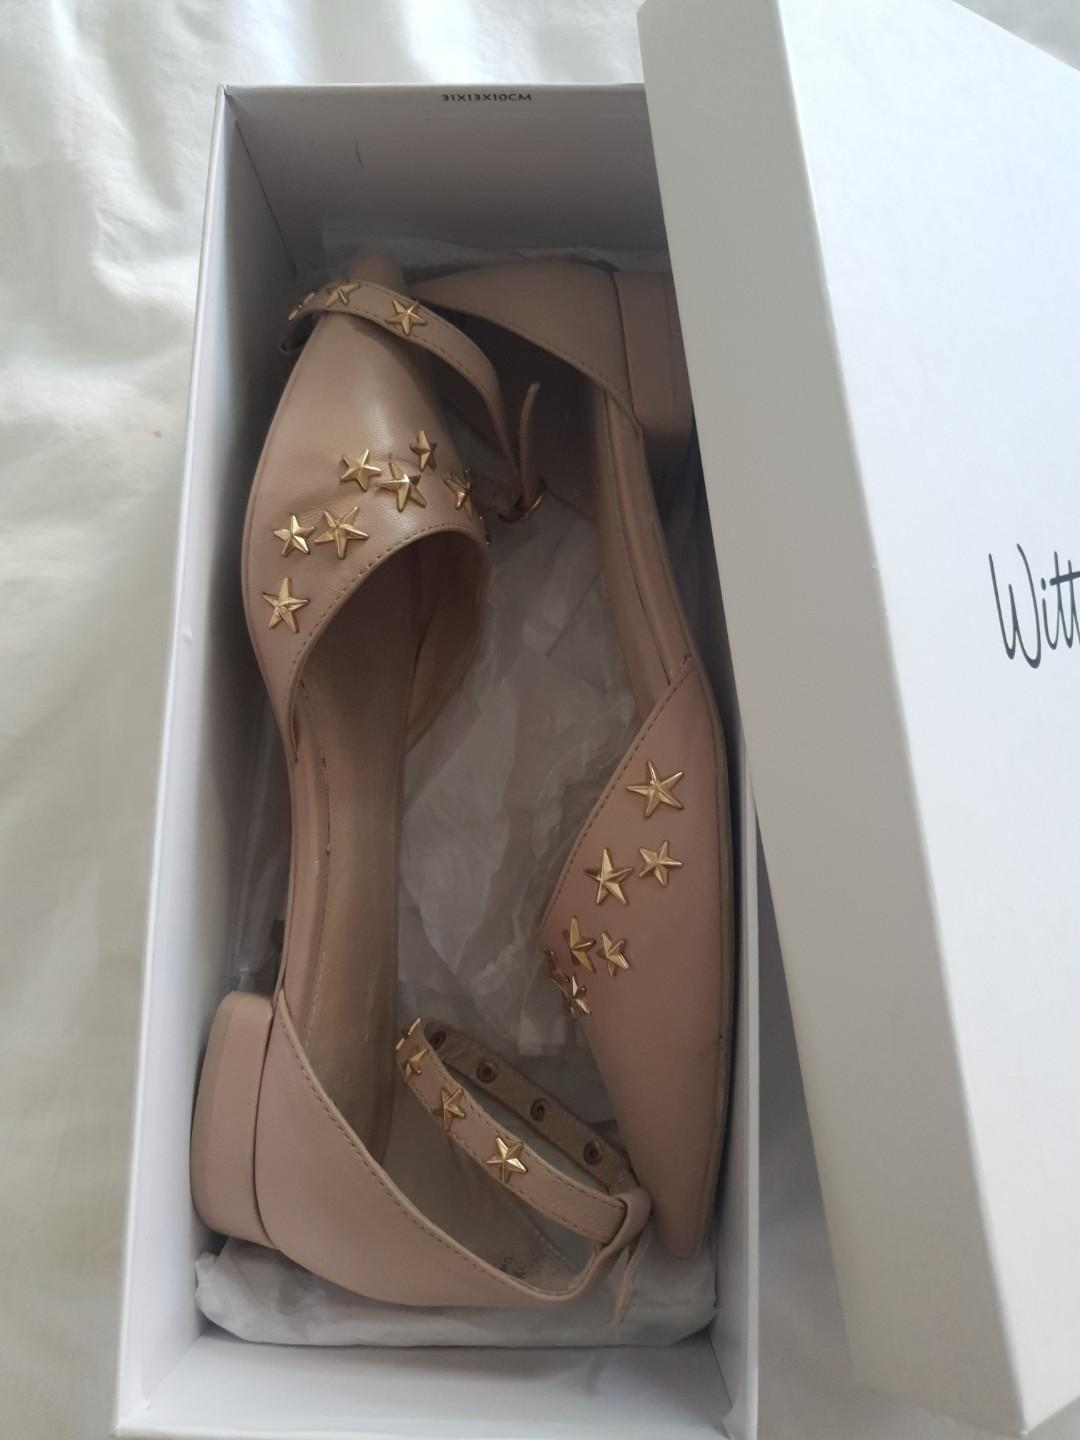 Blush pink flat shoes with gold stars - Wittner $35